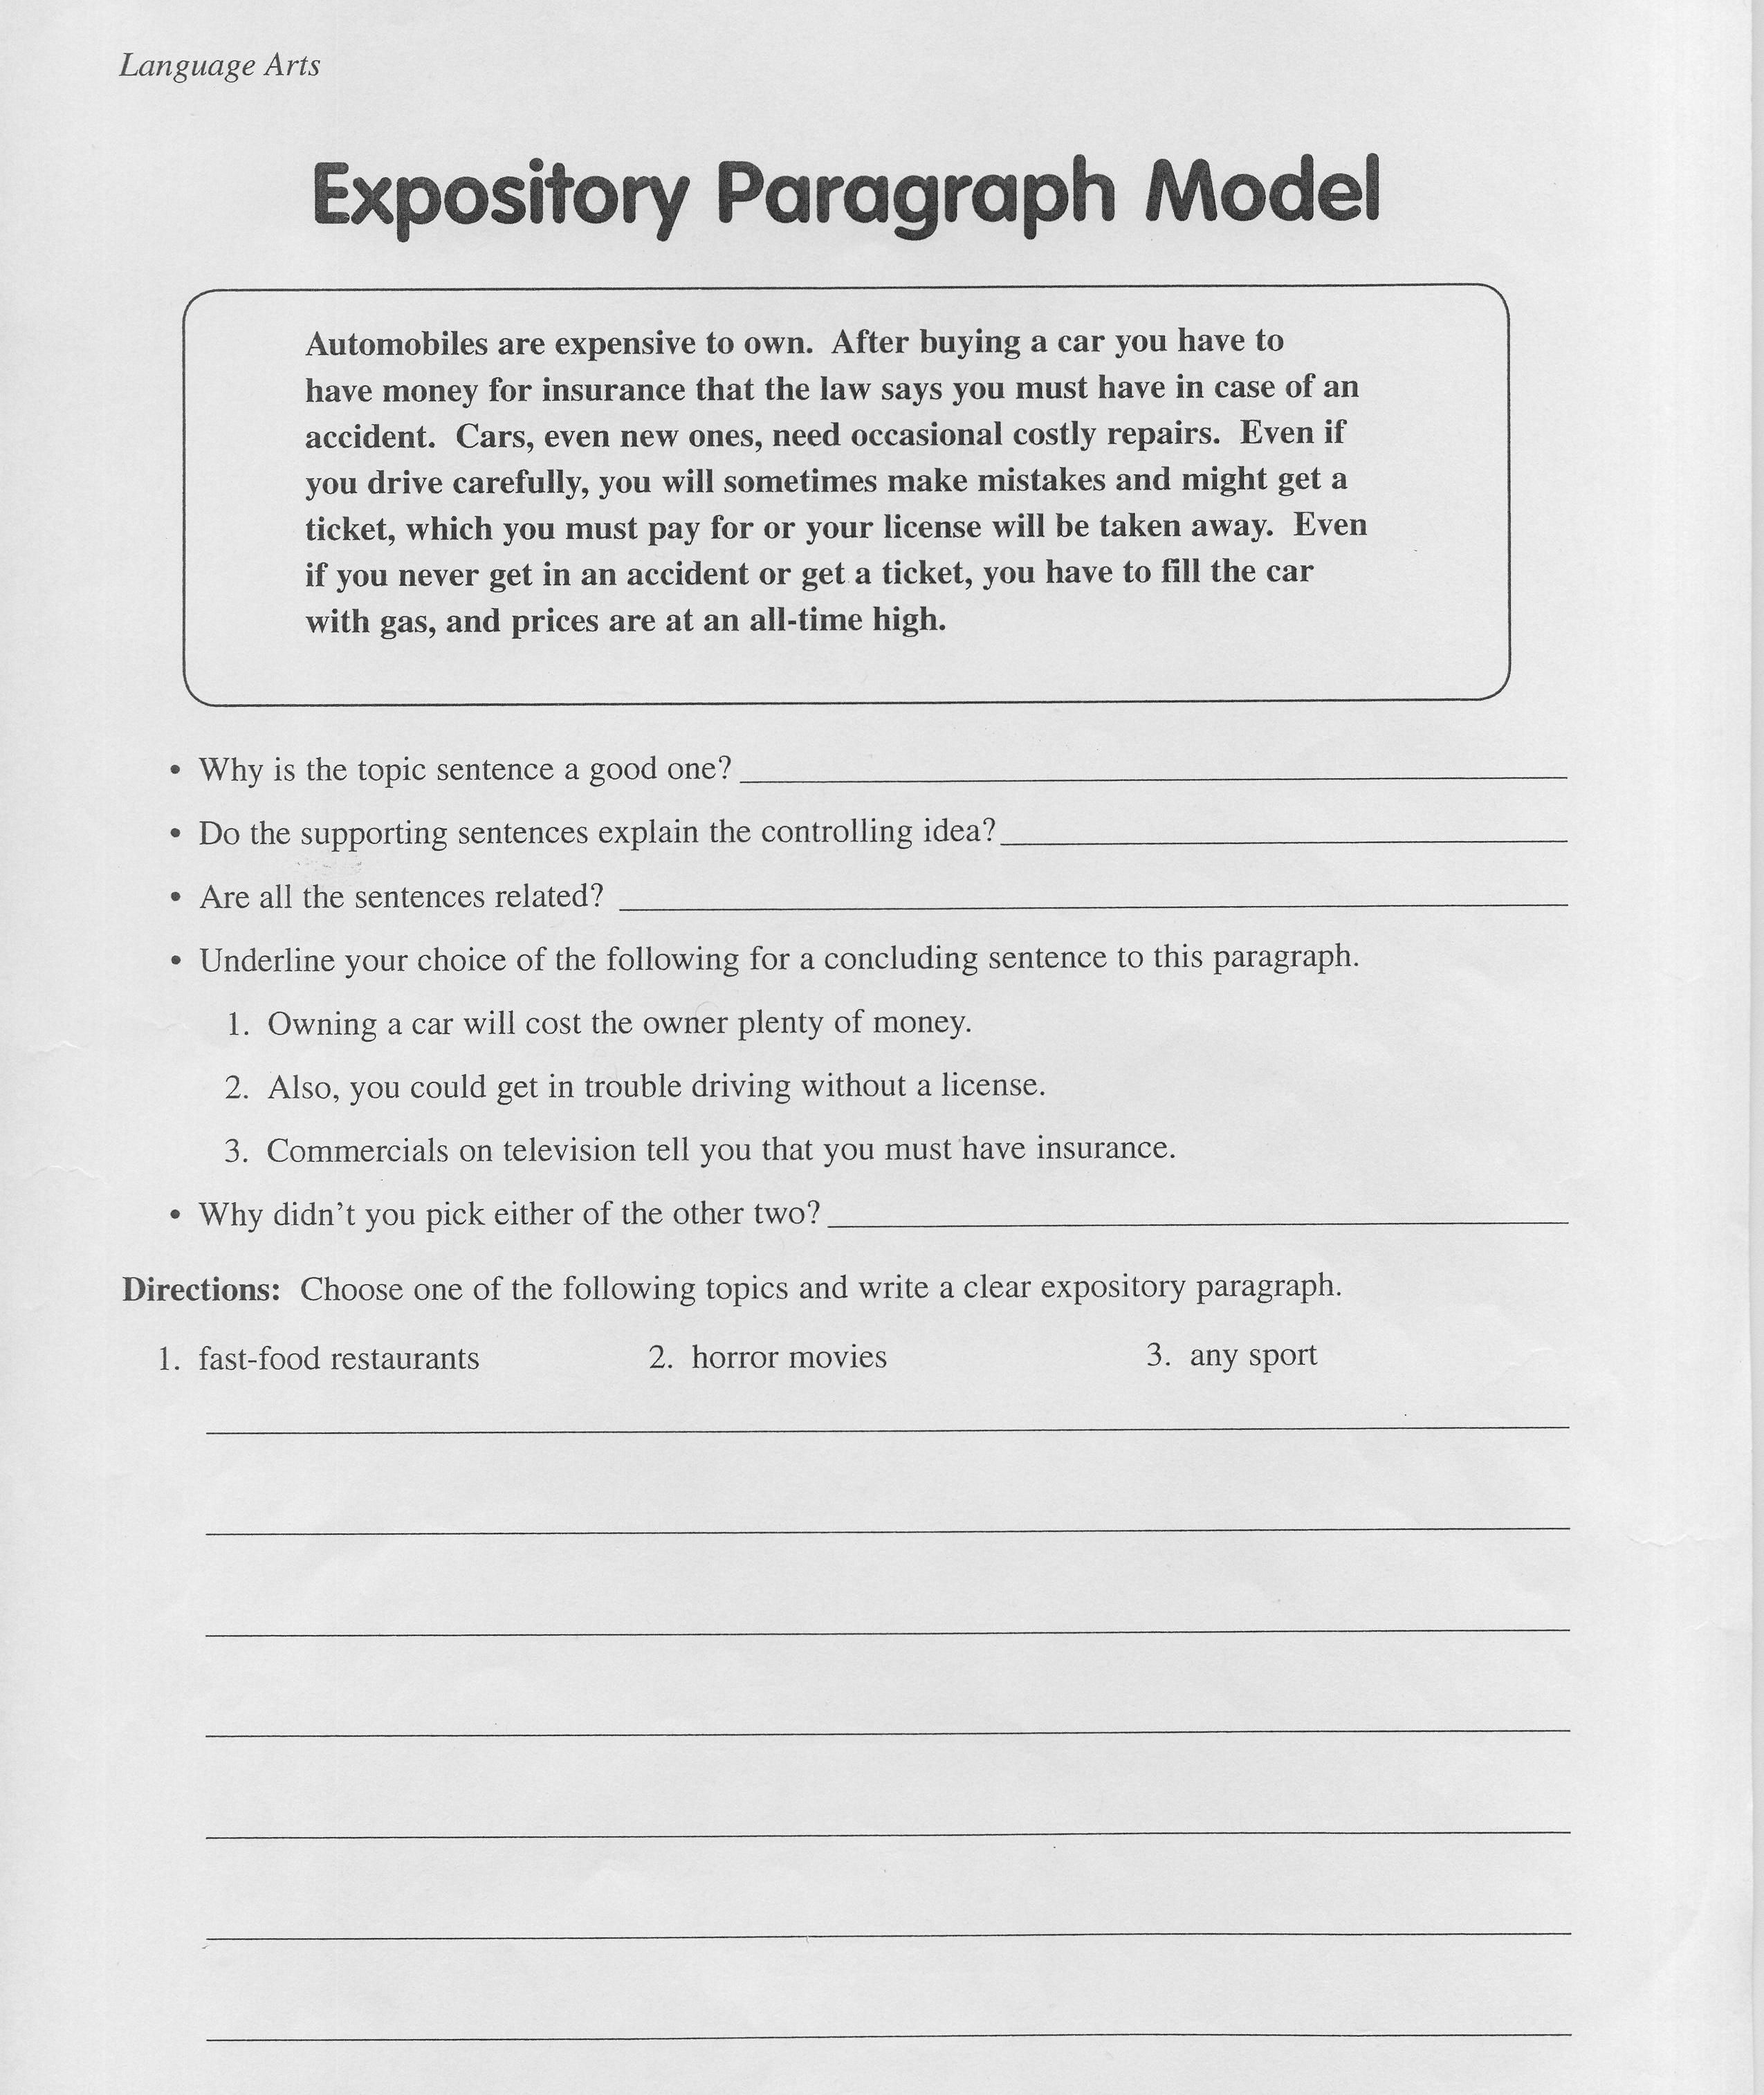 011 Essay Example Expository Awesome Topics For 4th Grade Prompt High School Prompts 7th Full